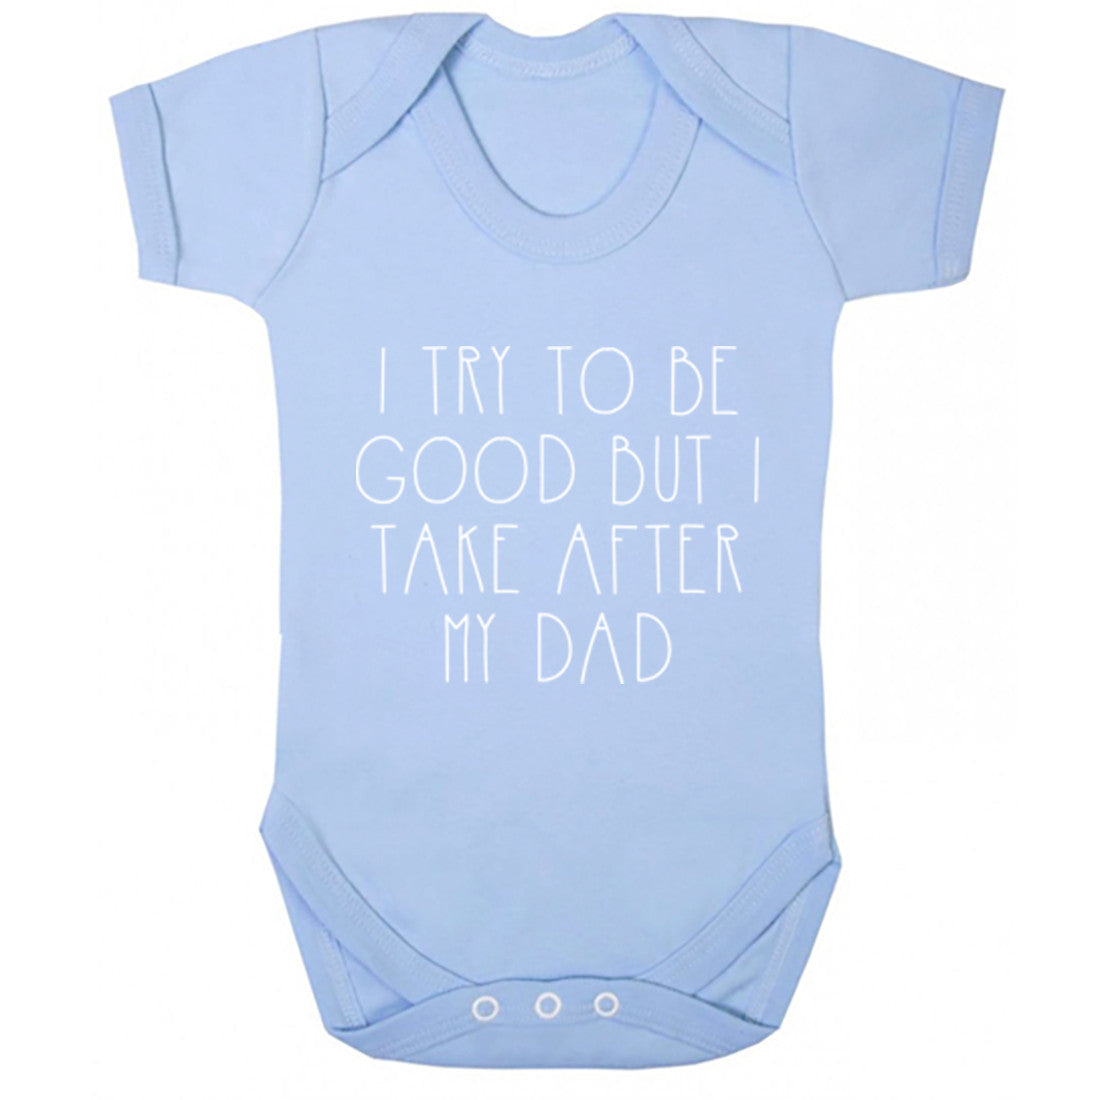 I Try To Be Good But I Take After My Dad Baby Vest K1529 - Illustrated Identity Ltd.